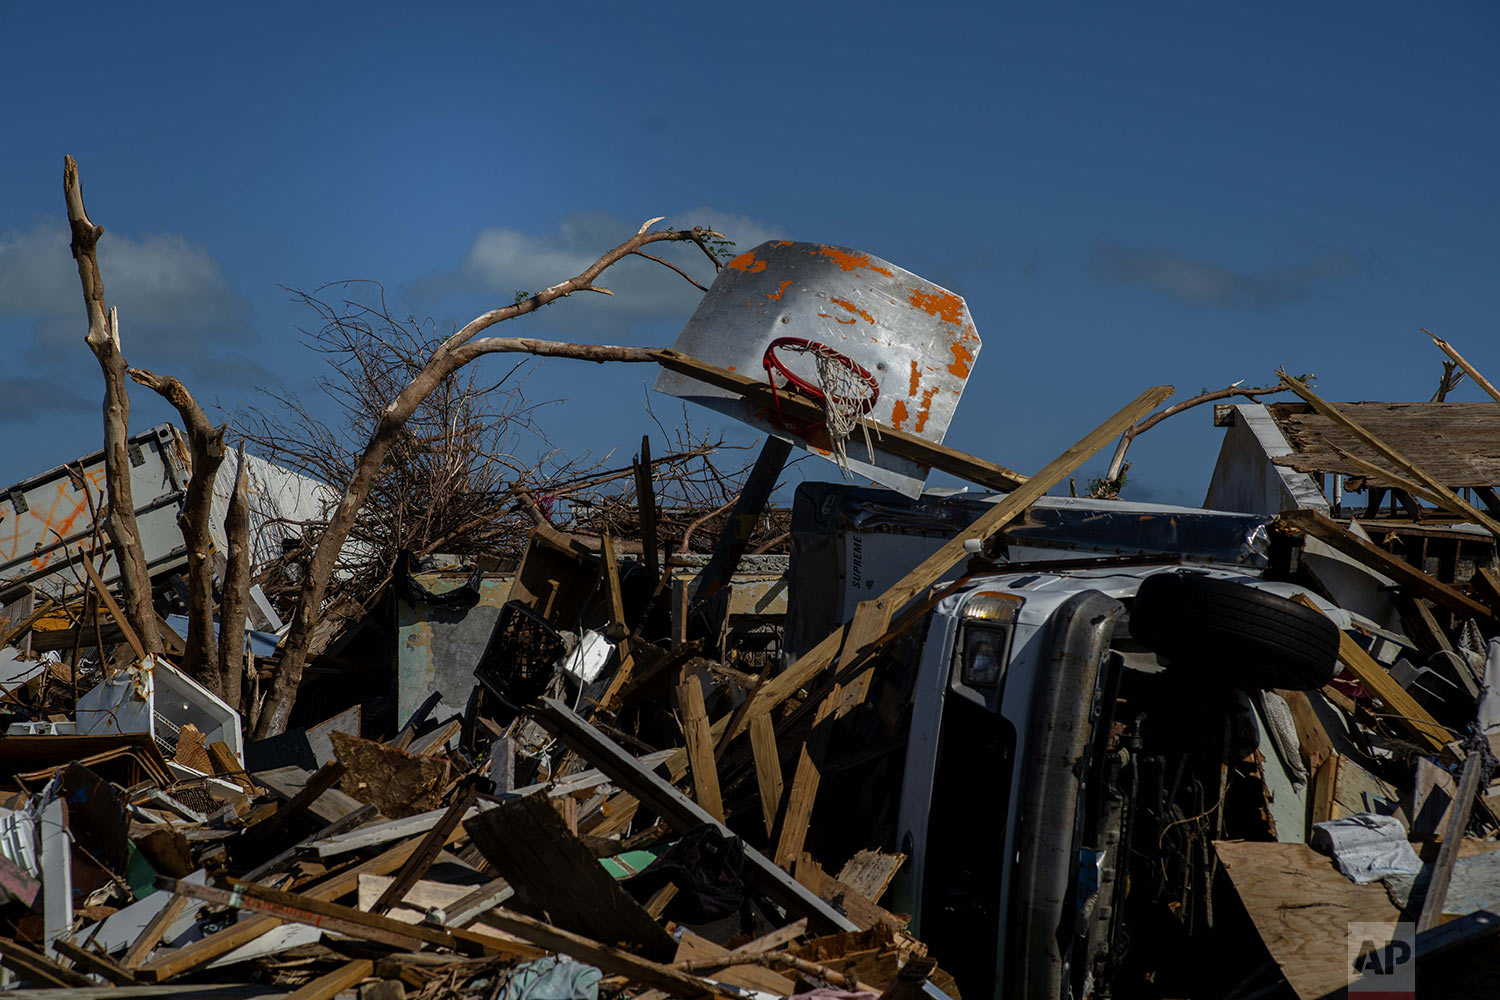 A basketball board is seen next to a car among the debris left by Hurricane Dorian, in a neighborhood destroyed by Hurricane Dorian, in Abaco, Bahamas, Friday, Sept. 27, 2019. Dorian hit the northern Bahamas on Sept. 1, with sustained winds of 185 mph (295 kph), unleashing flooding that reached up to 25 feet (8 meters) in some areas. (AP Photo/Ramon Espinosa)